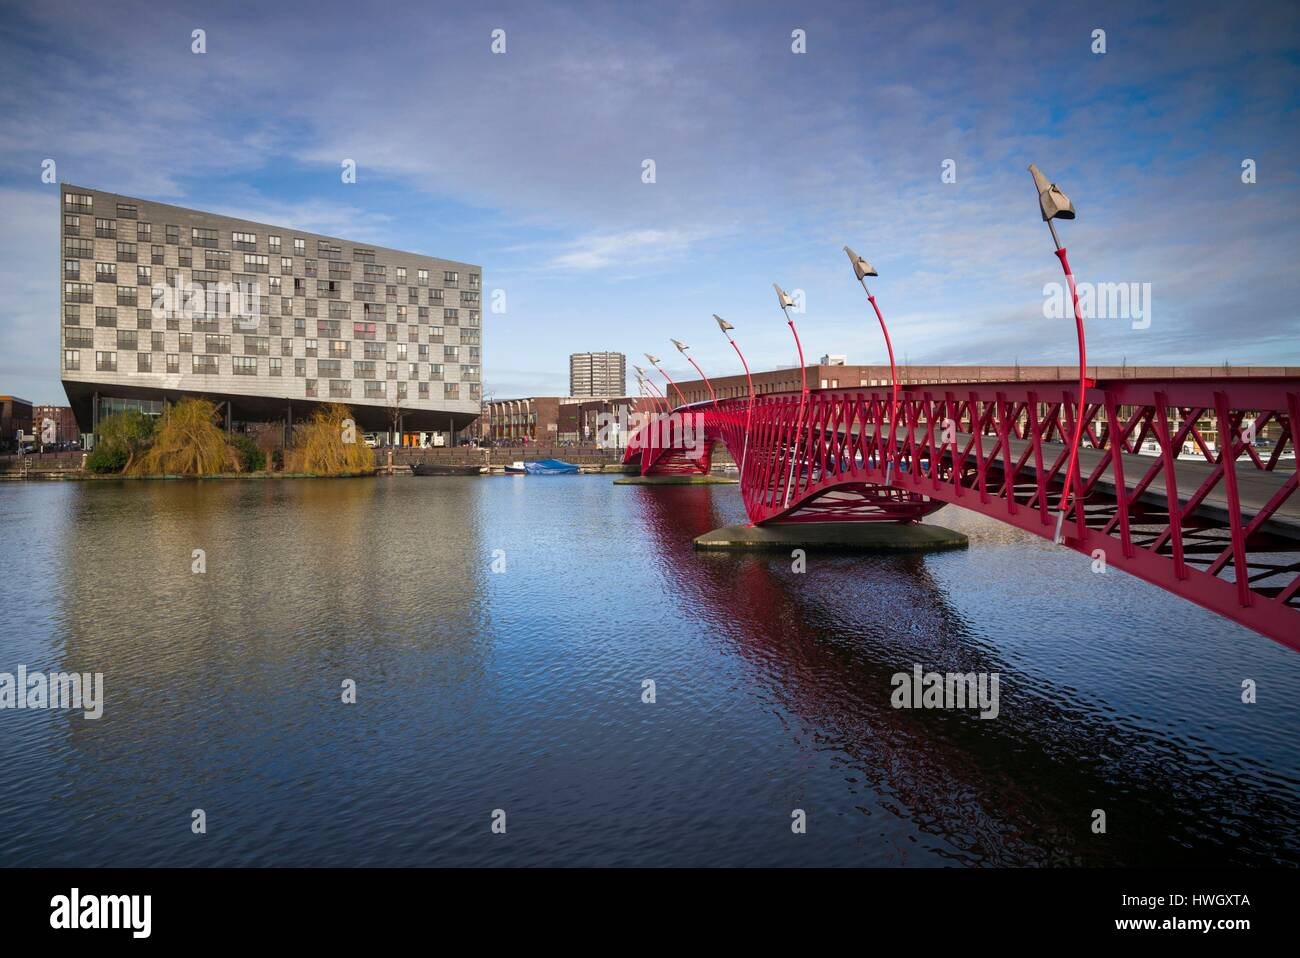 Netherlands, Amsterdam, Eastern Docklands, Spoorweg-bassin with The Whale Building and renovated docklands area - Stock Image